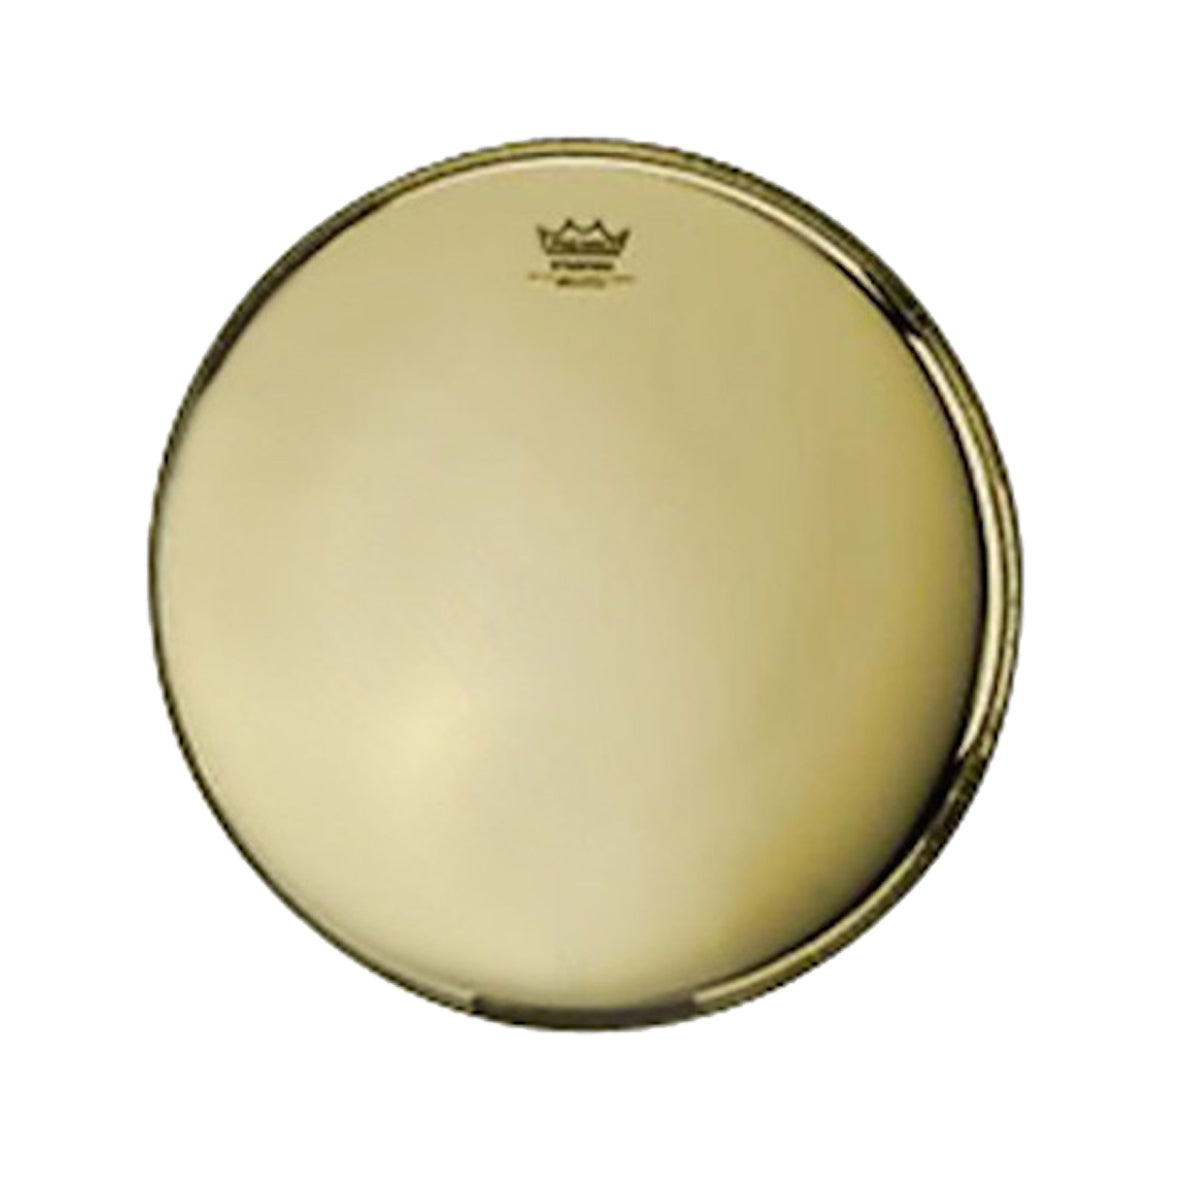 Remo GD-1020-00 20inch Ambassador STARFIRE Gold Bass Drum Head Skin